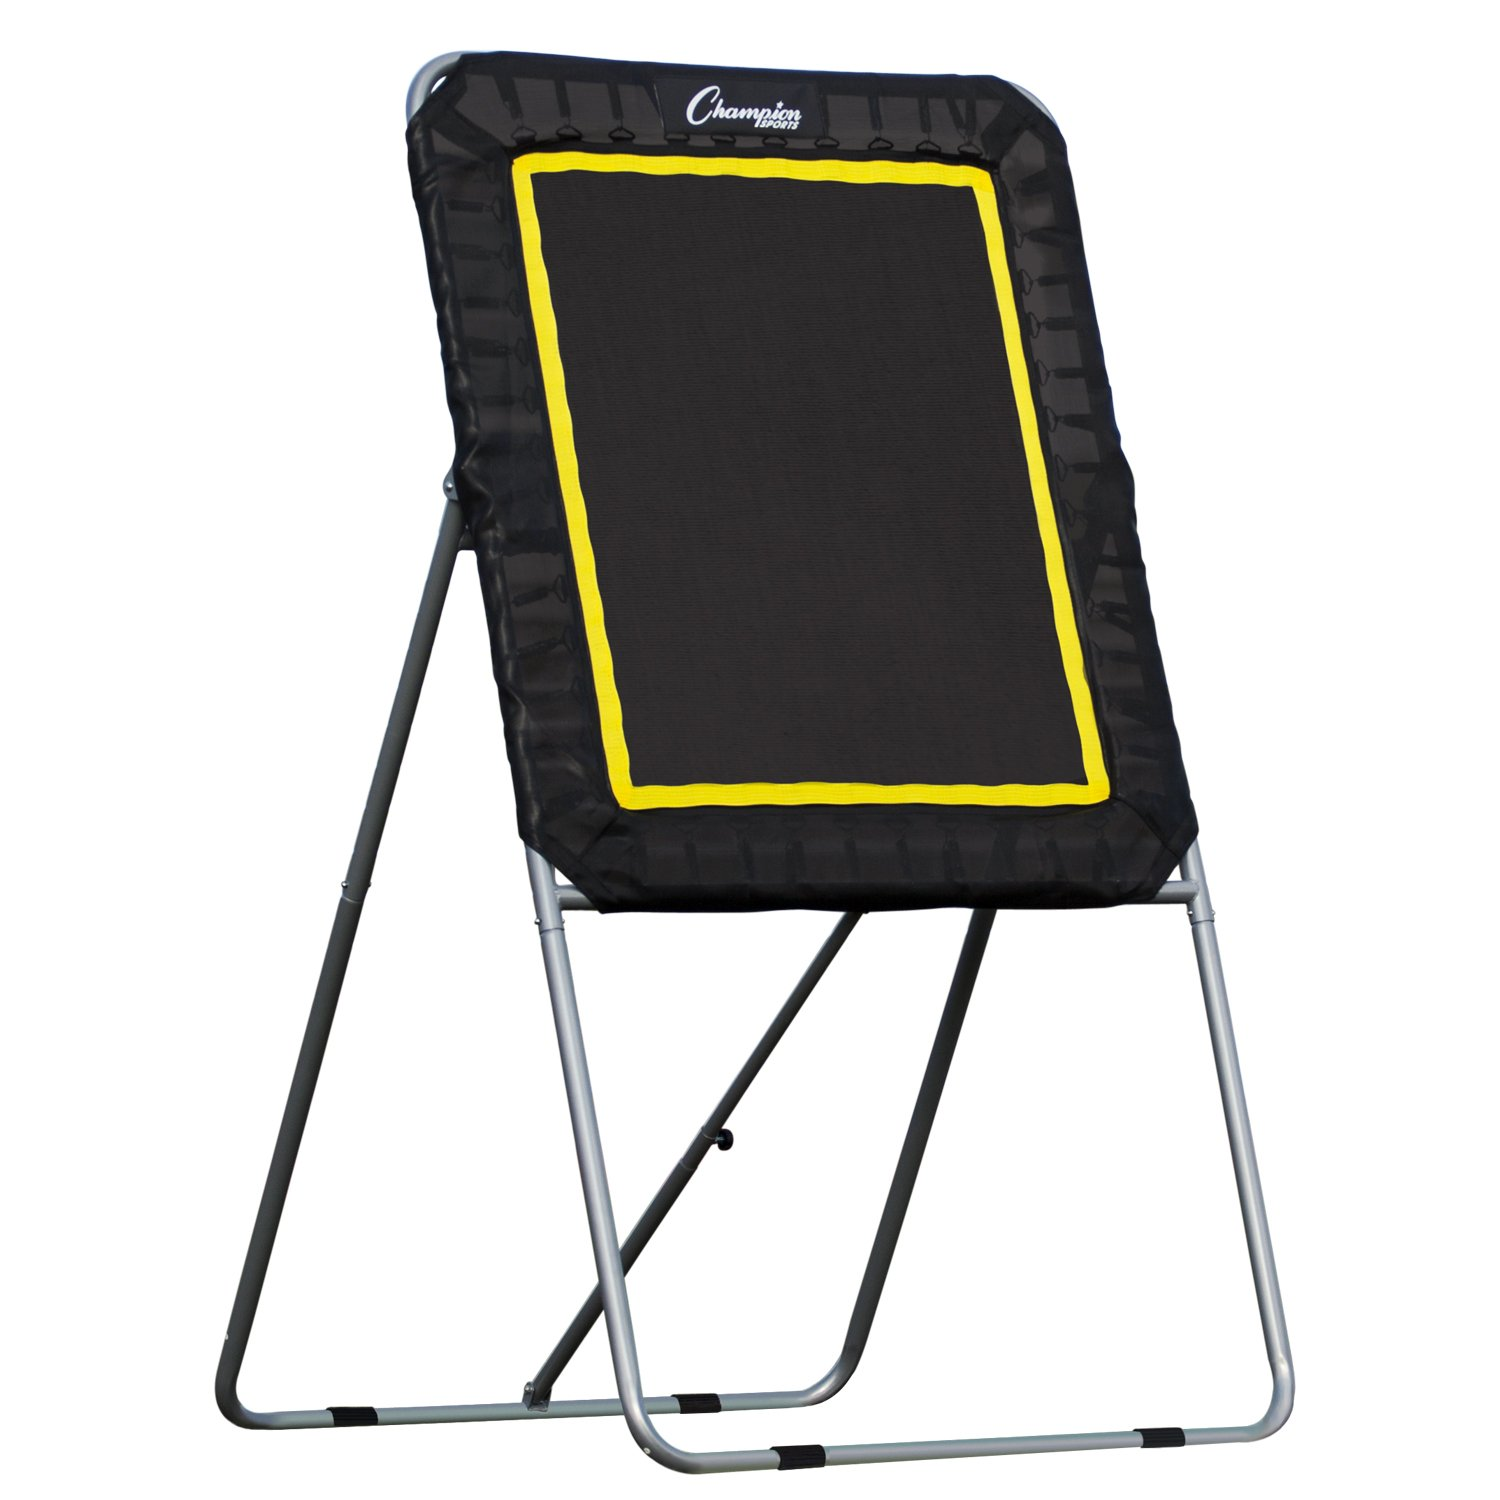 Champion Sports Deluxe Lacrosse Target: Ball Return Bounce Back Net Set for Professional, College and Grade School Training, and Drills - Practice Offense, Passing Skills, and Shooting Accuracy by Champion Sports